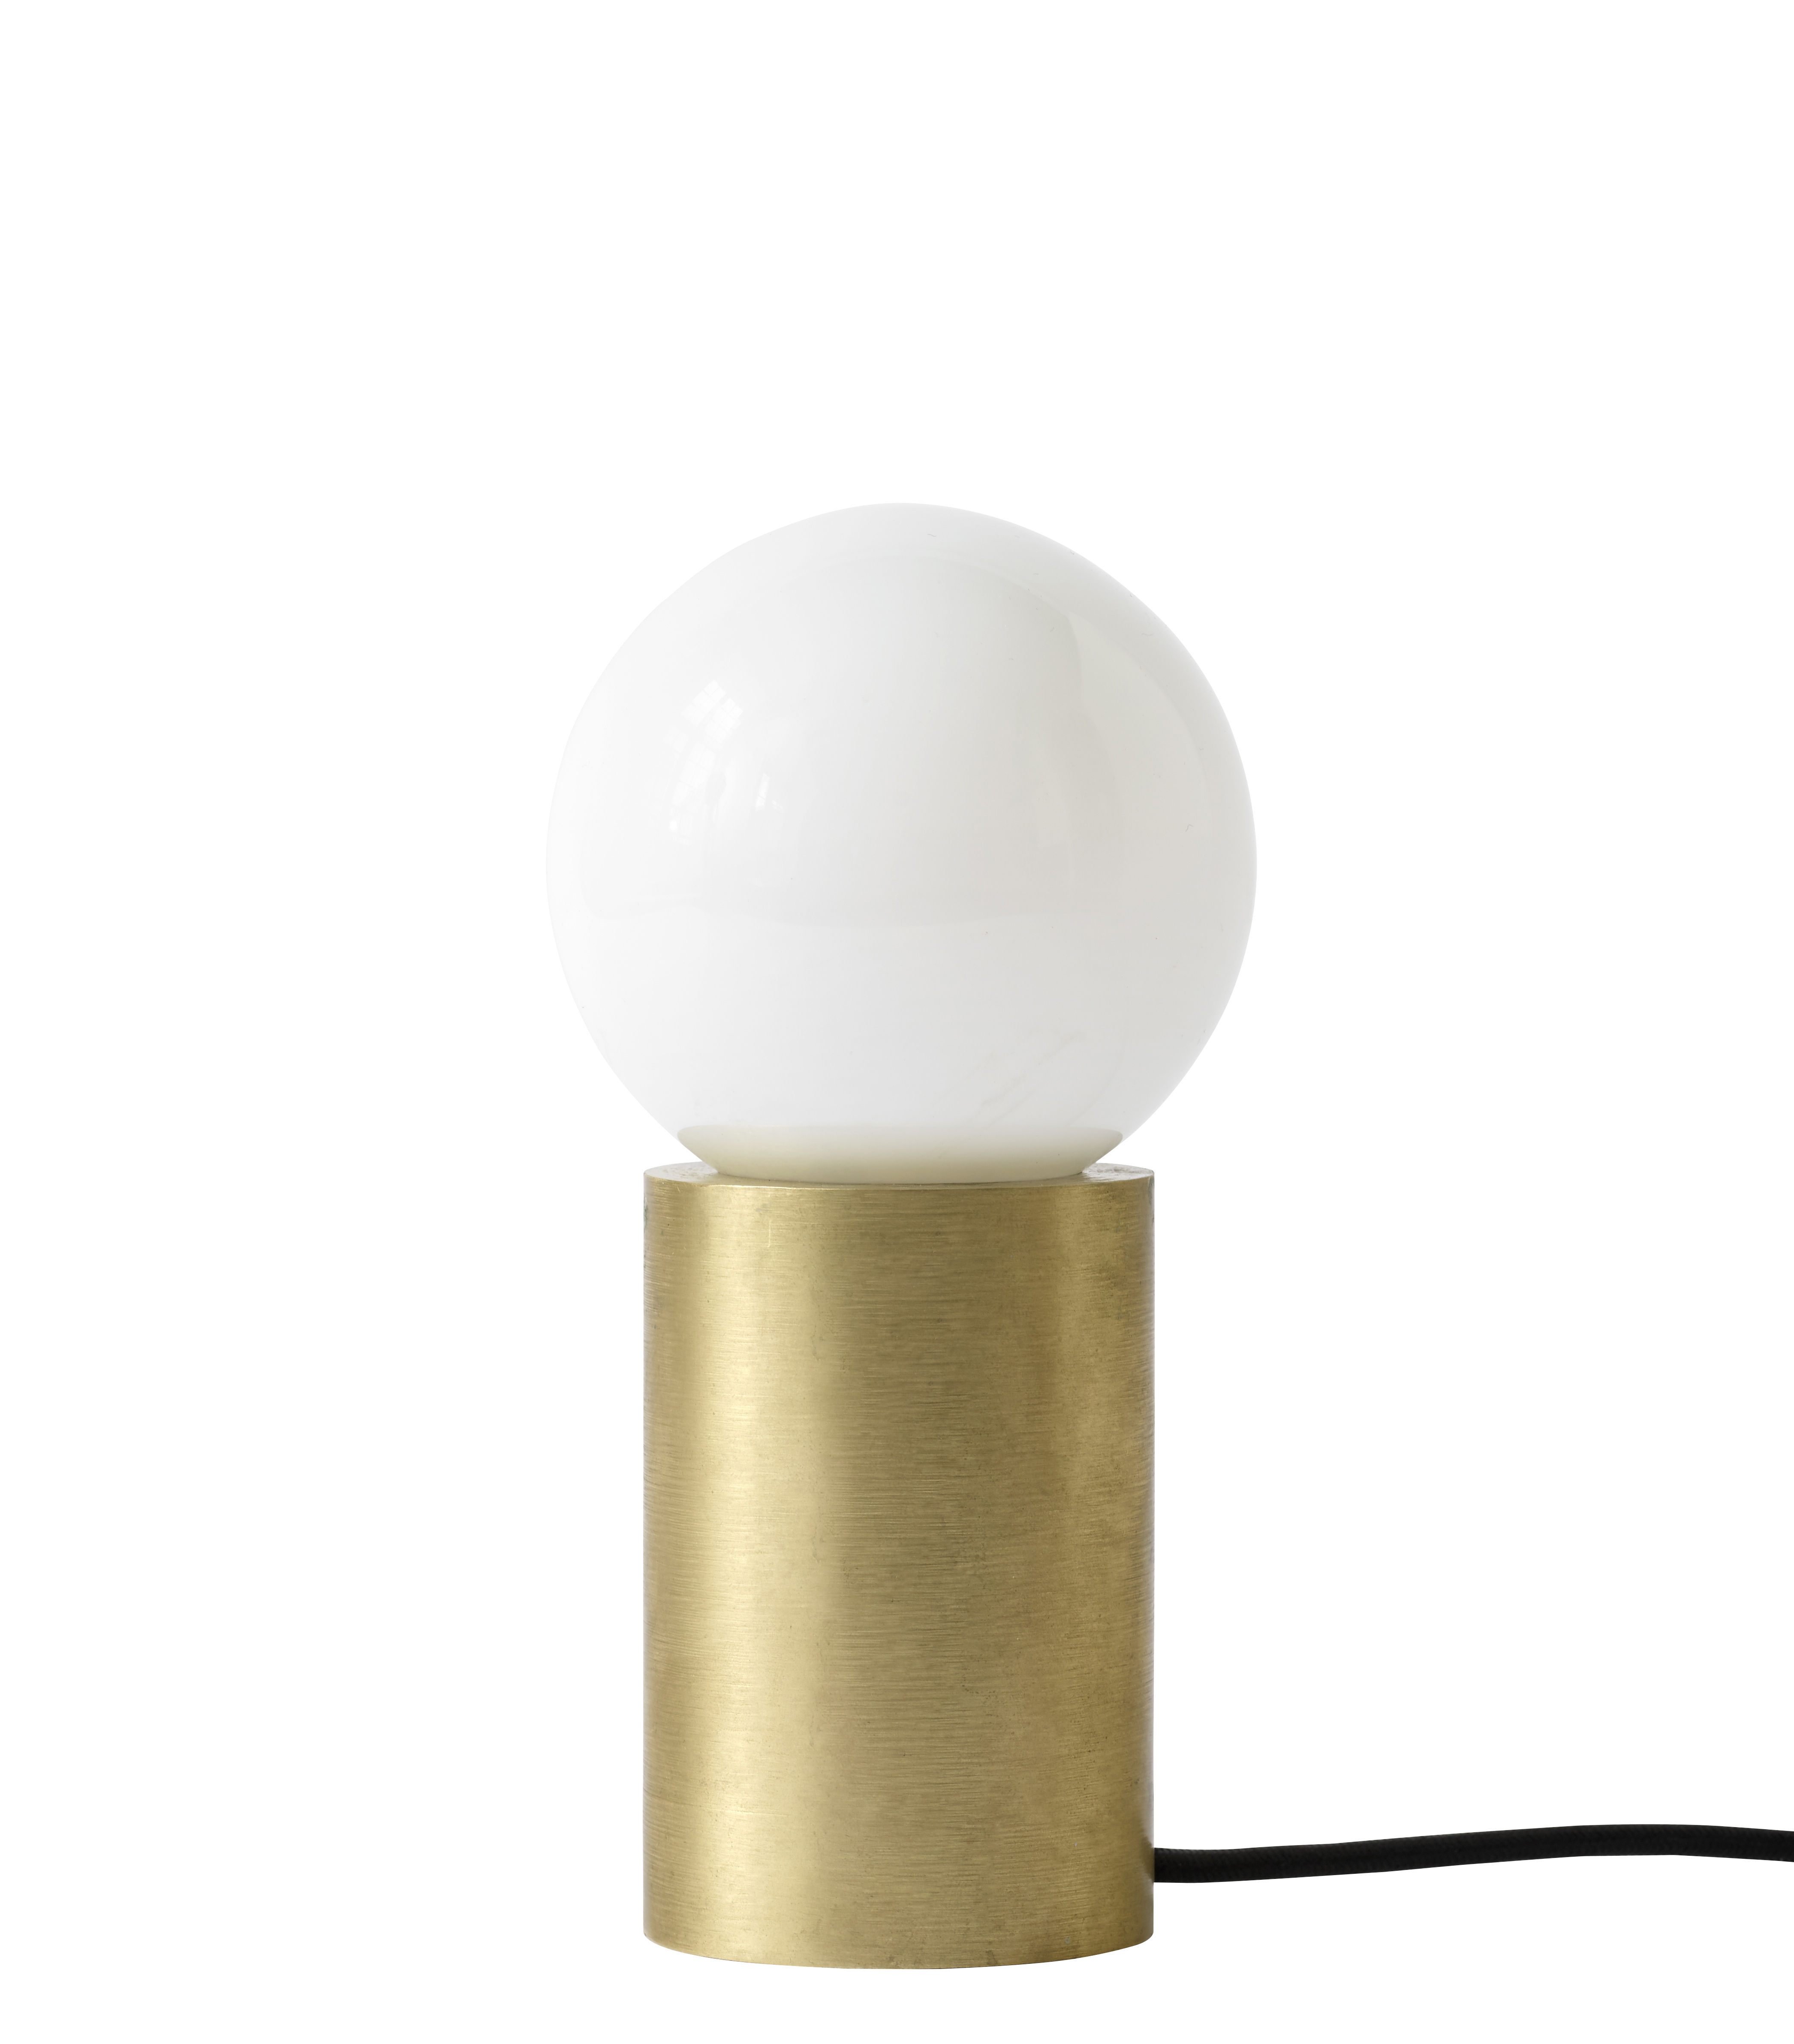 Lighting - Table Lamps - Socket Table lamp - H 18 cm - Laiton by Menu - Brass - Solid brass